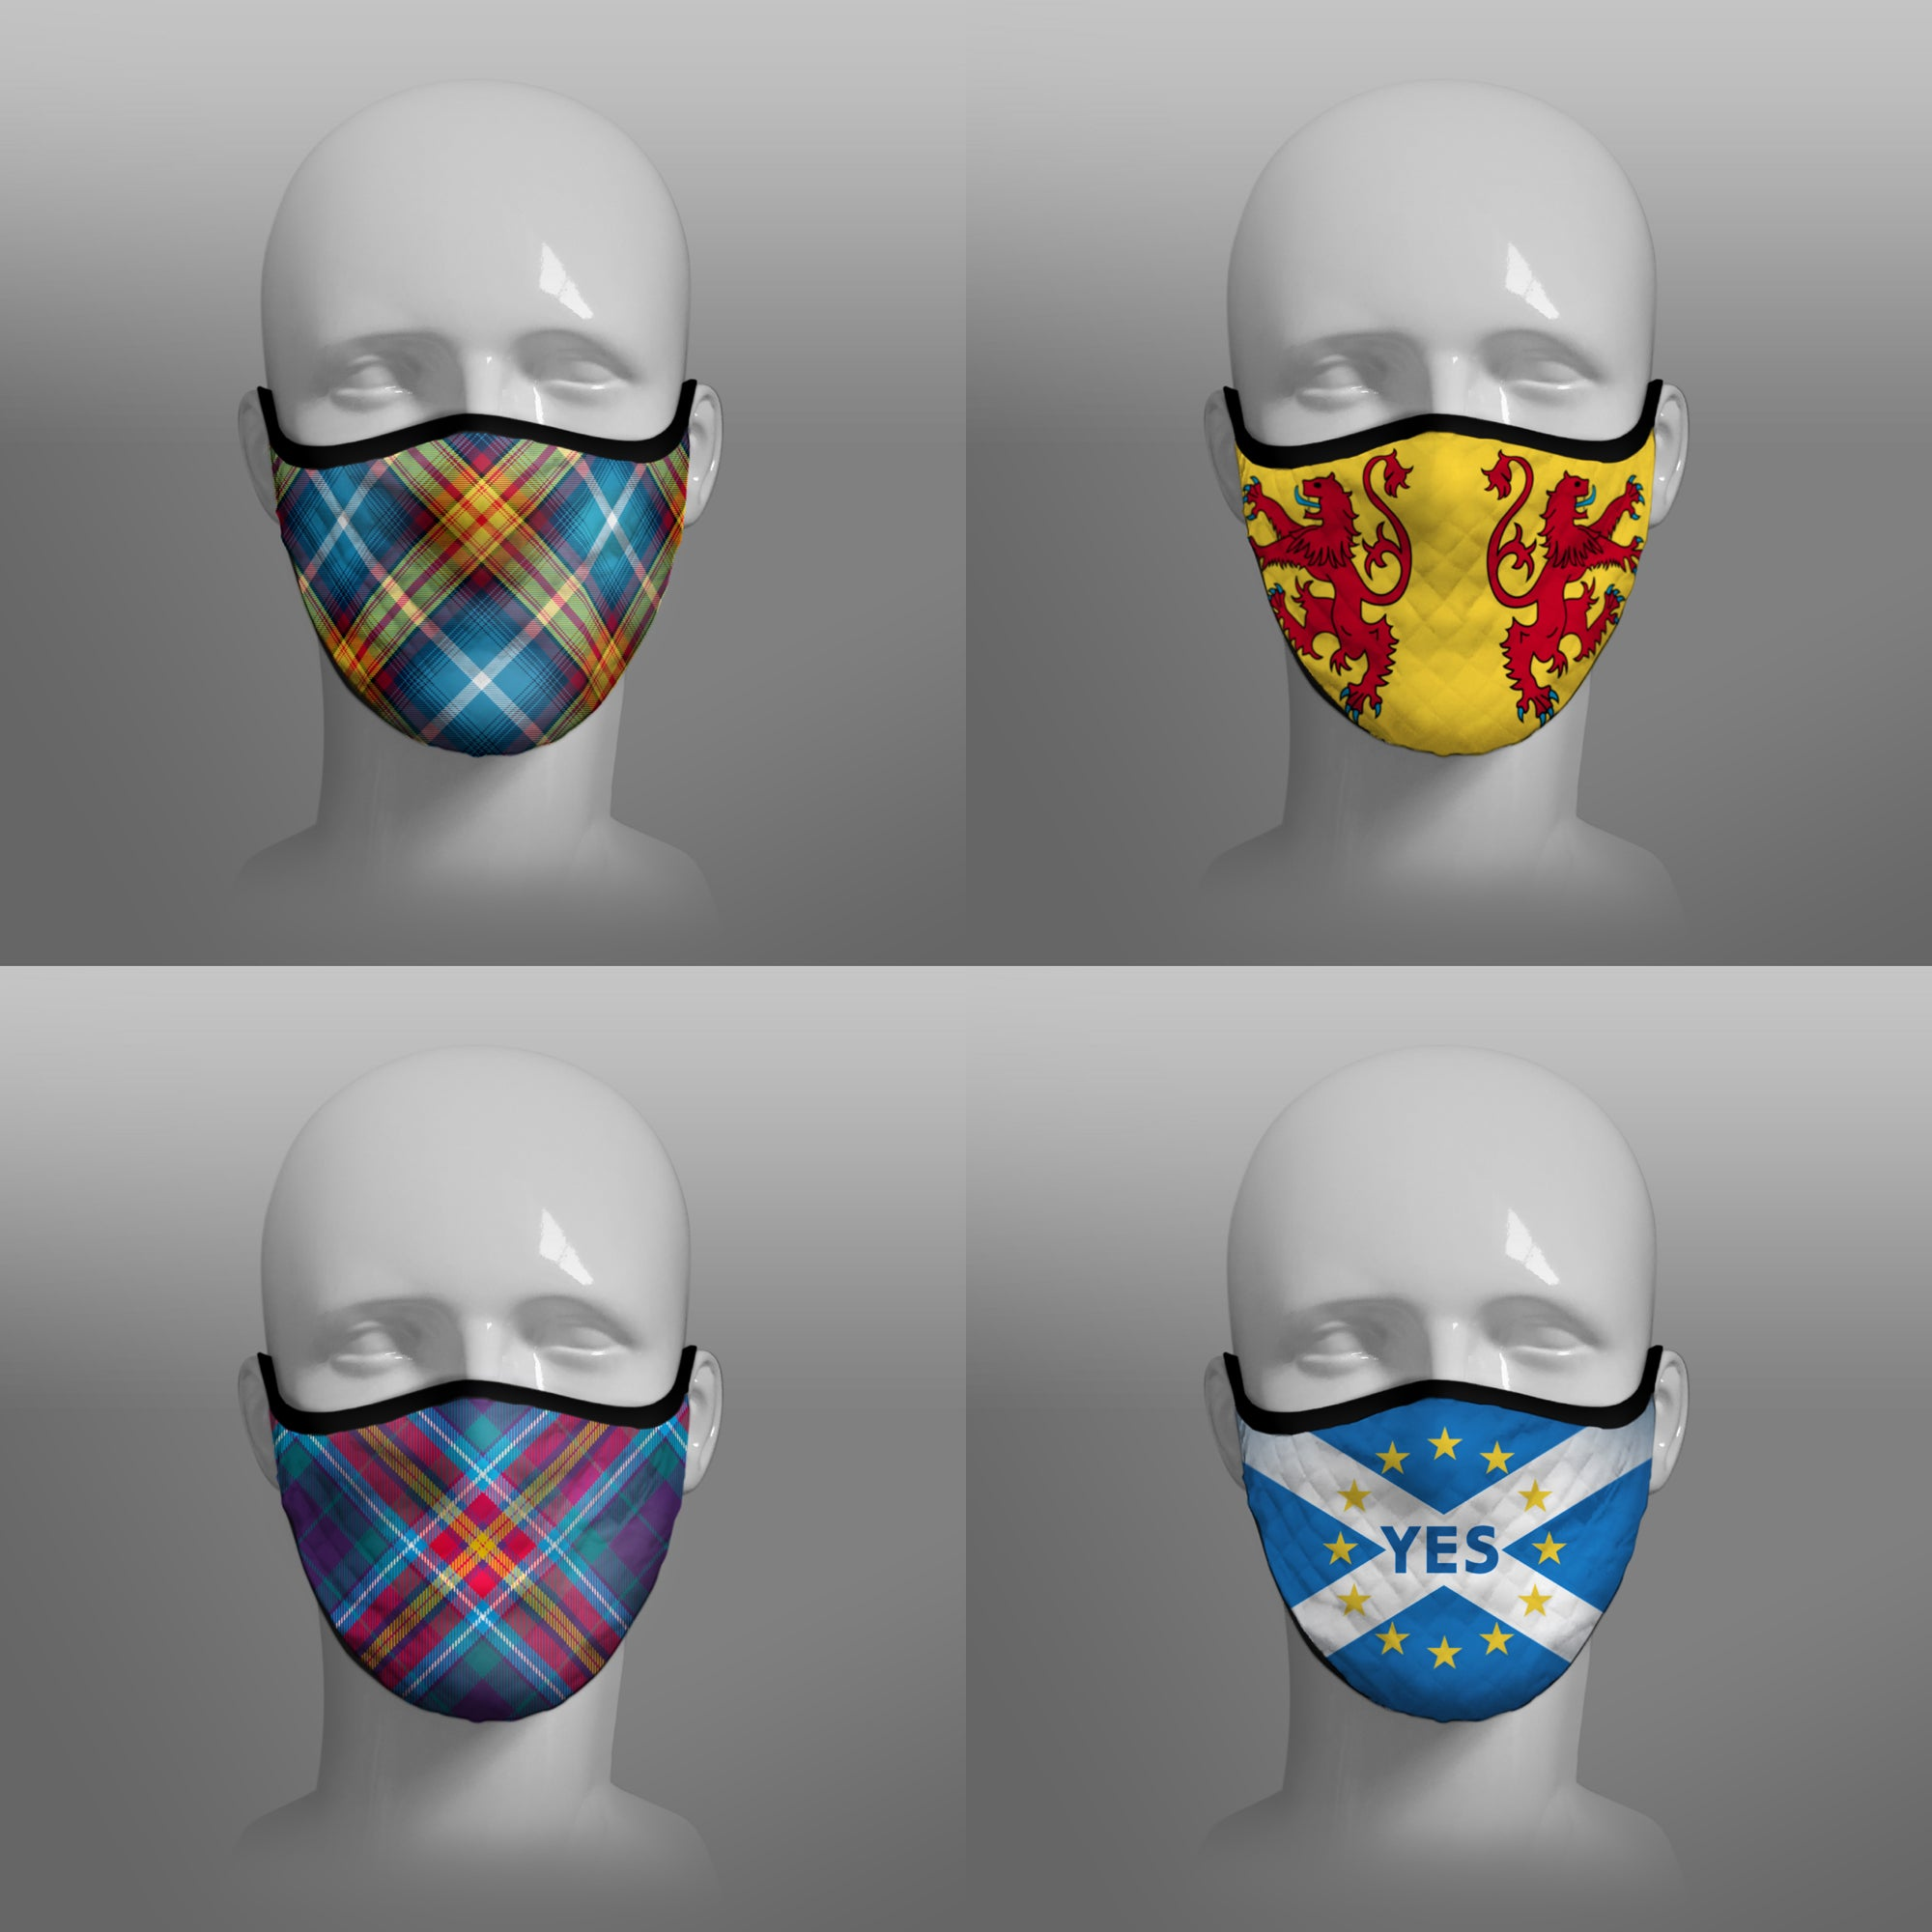 Tartan Face coverings face masks Covid 19 Covid-19 Pandemic Coronavirus Virus cough sneeze by Steven Patrick Sim the Tartan Artisan Stevie Tartan Guy - Nicola Sturgeon homeless - four pack combo - large - including Declaration of Arbroath Scottish Independence Saltire 6th April 1320 - YES It's Time Scots campaign Alba Gu Brath bràth - Pro EU - European Union Saltire - Lion Rampant Royal Standard of Scotland - four pack combo small